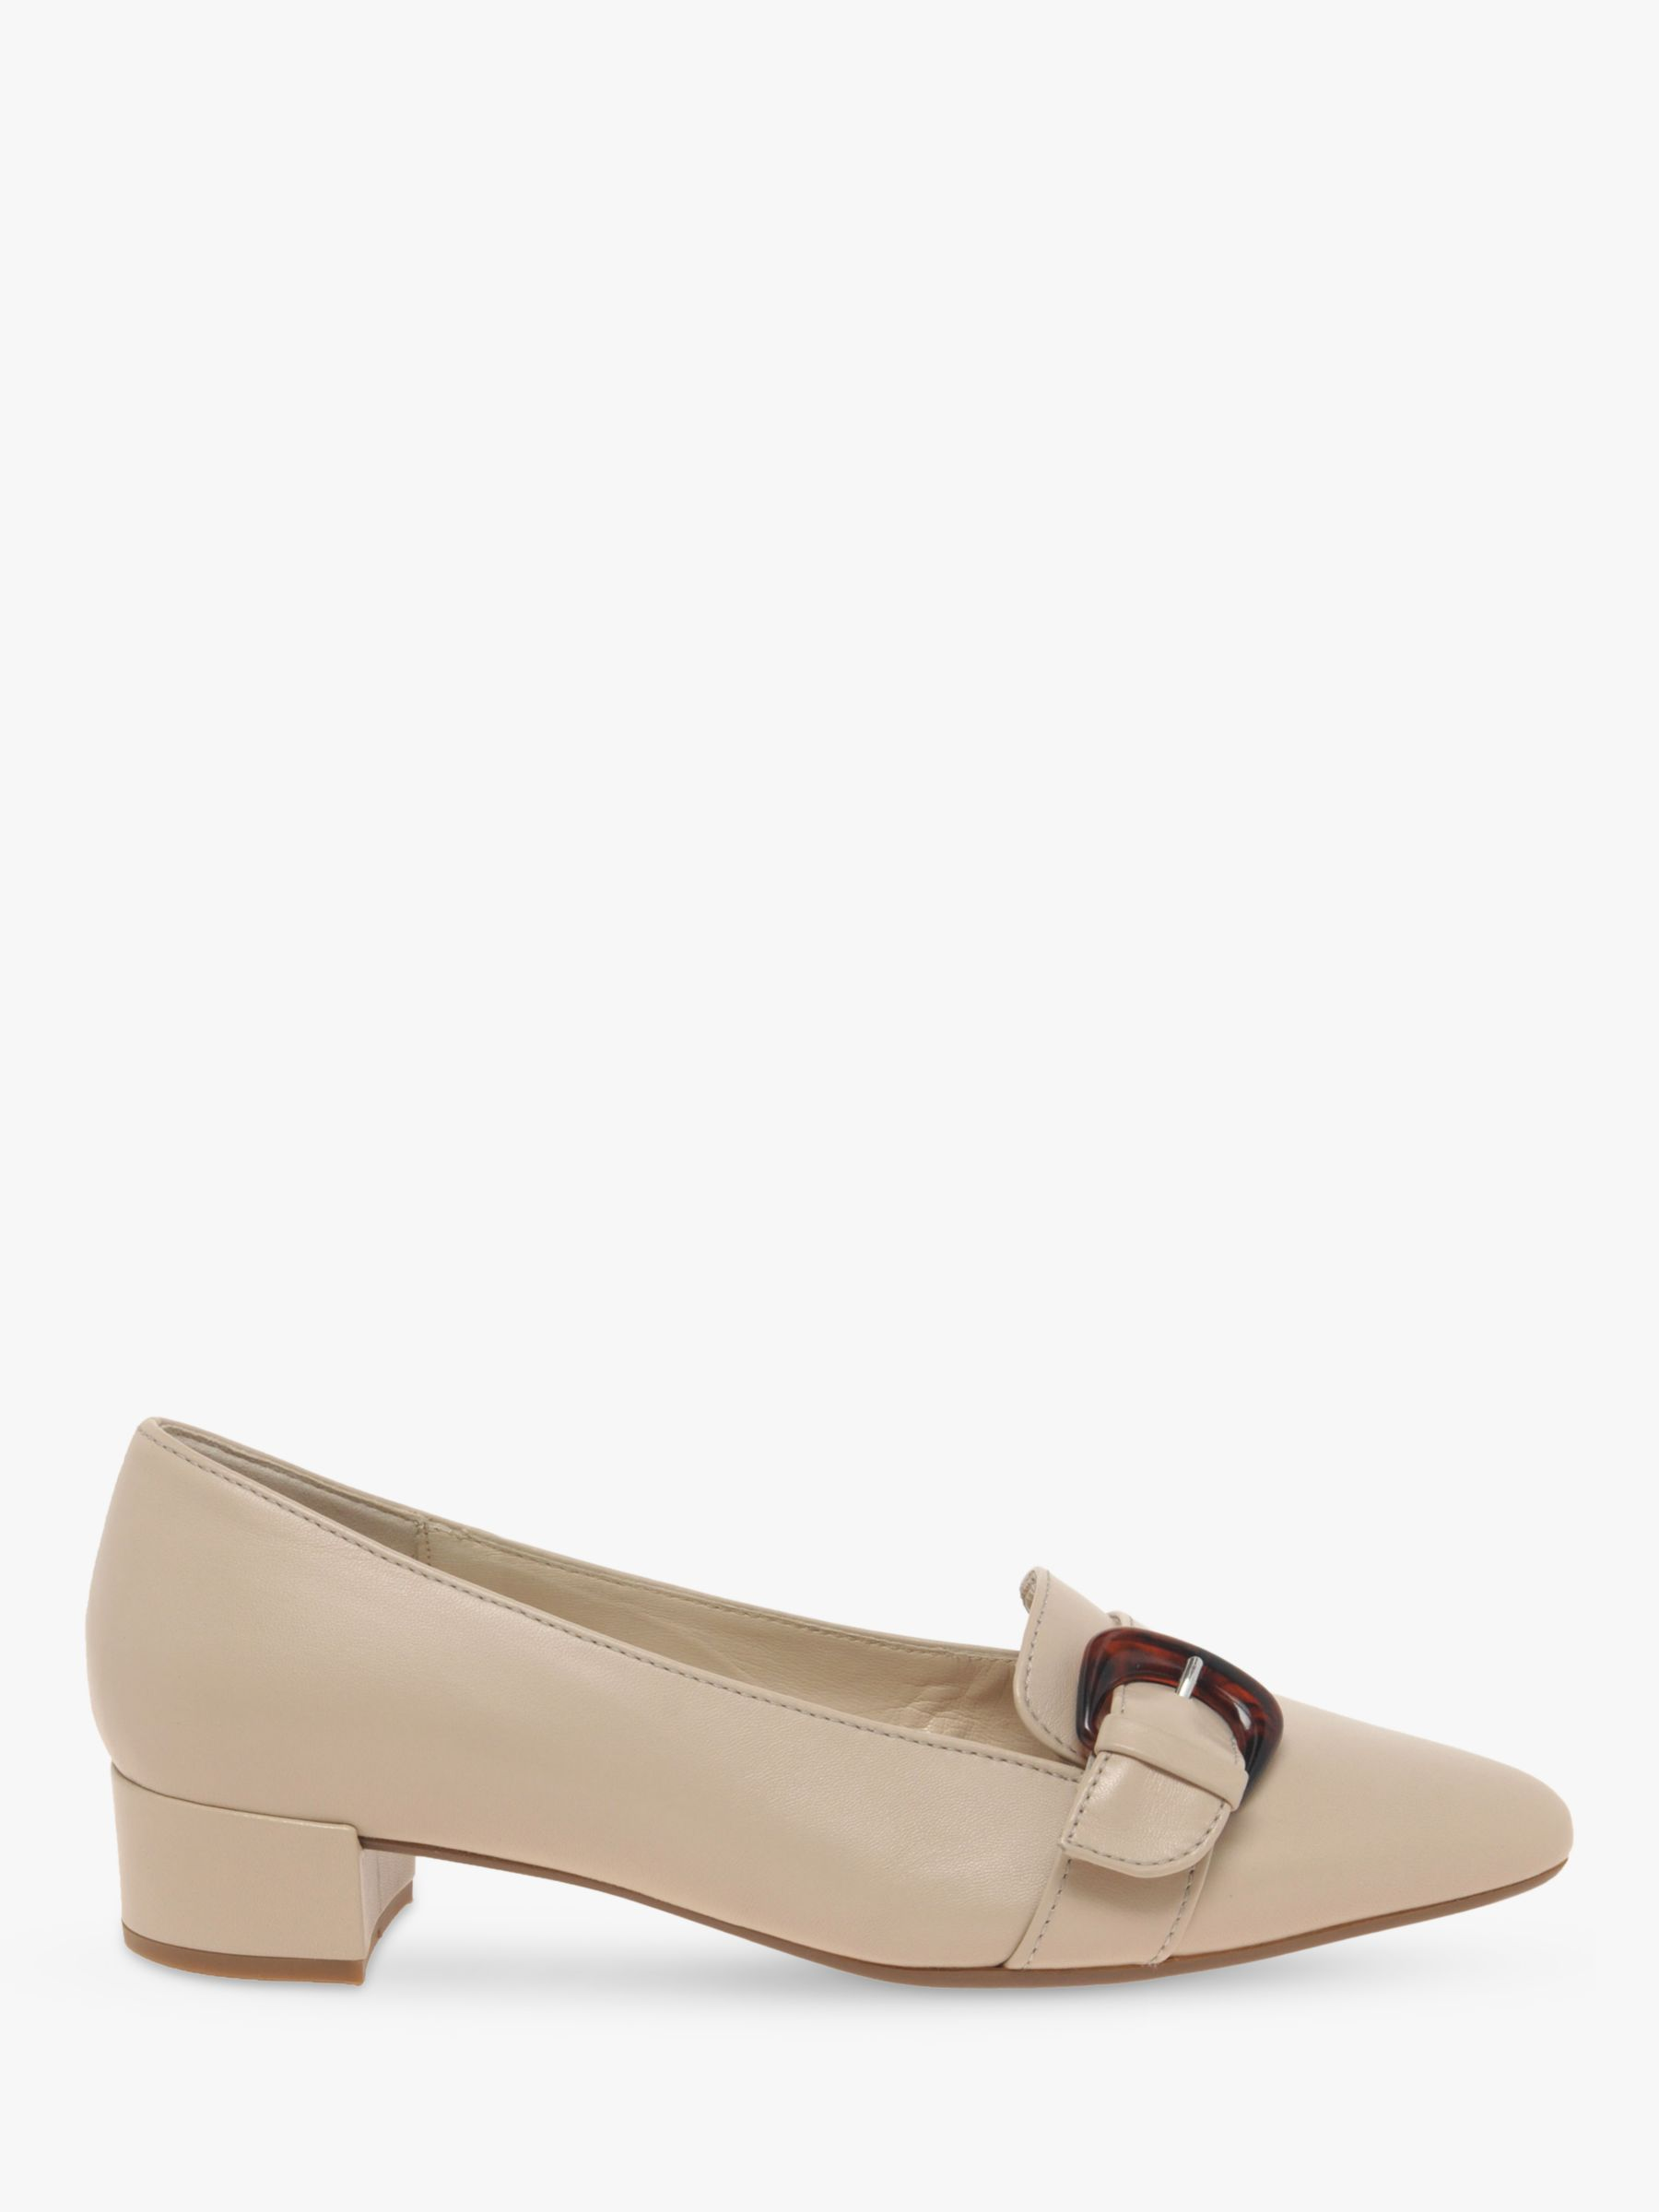 Gabor Gabor Predict Leather Court Shoes, New Rose